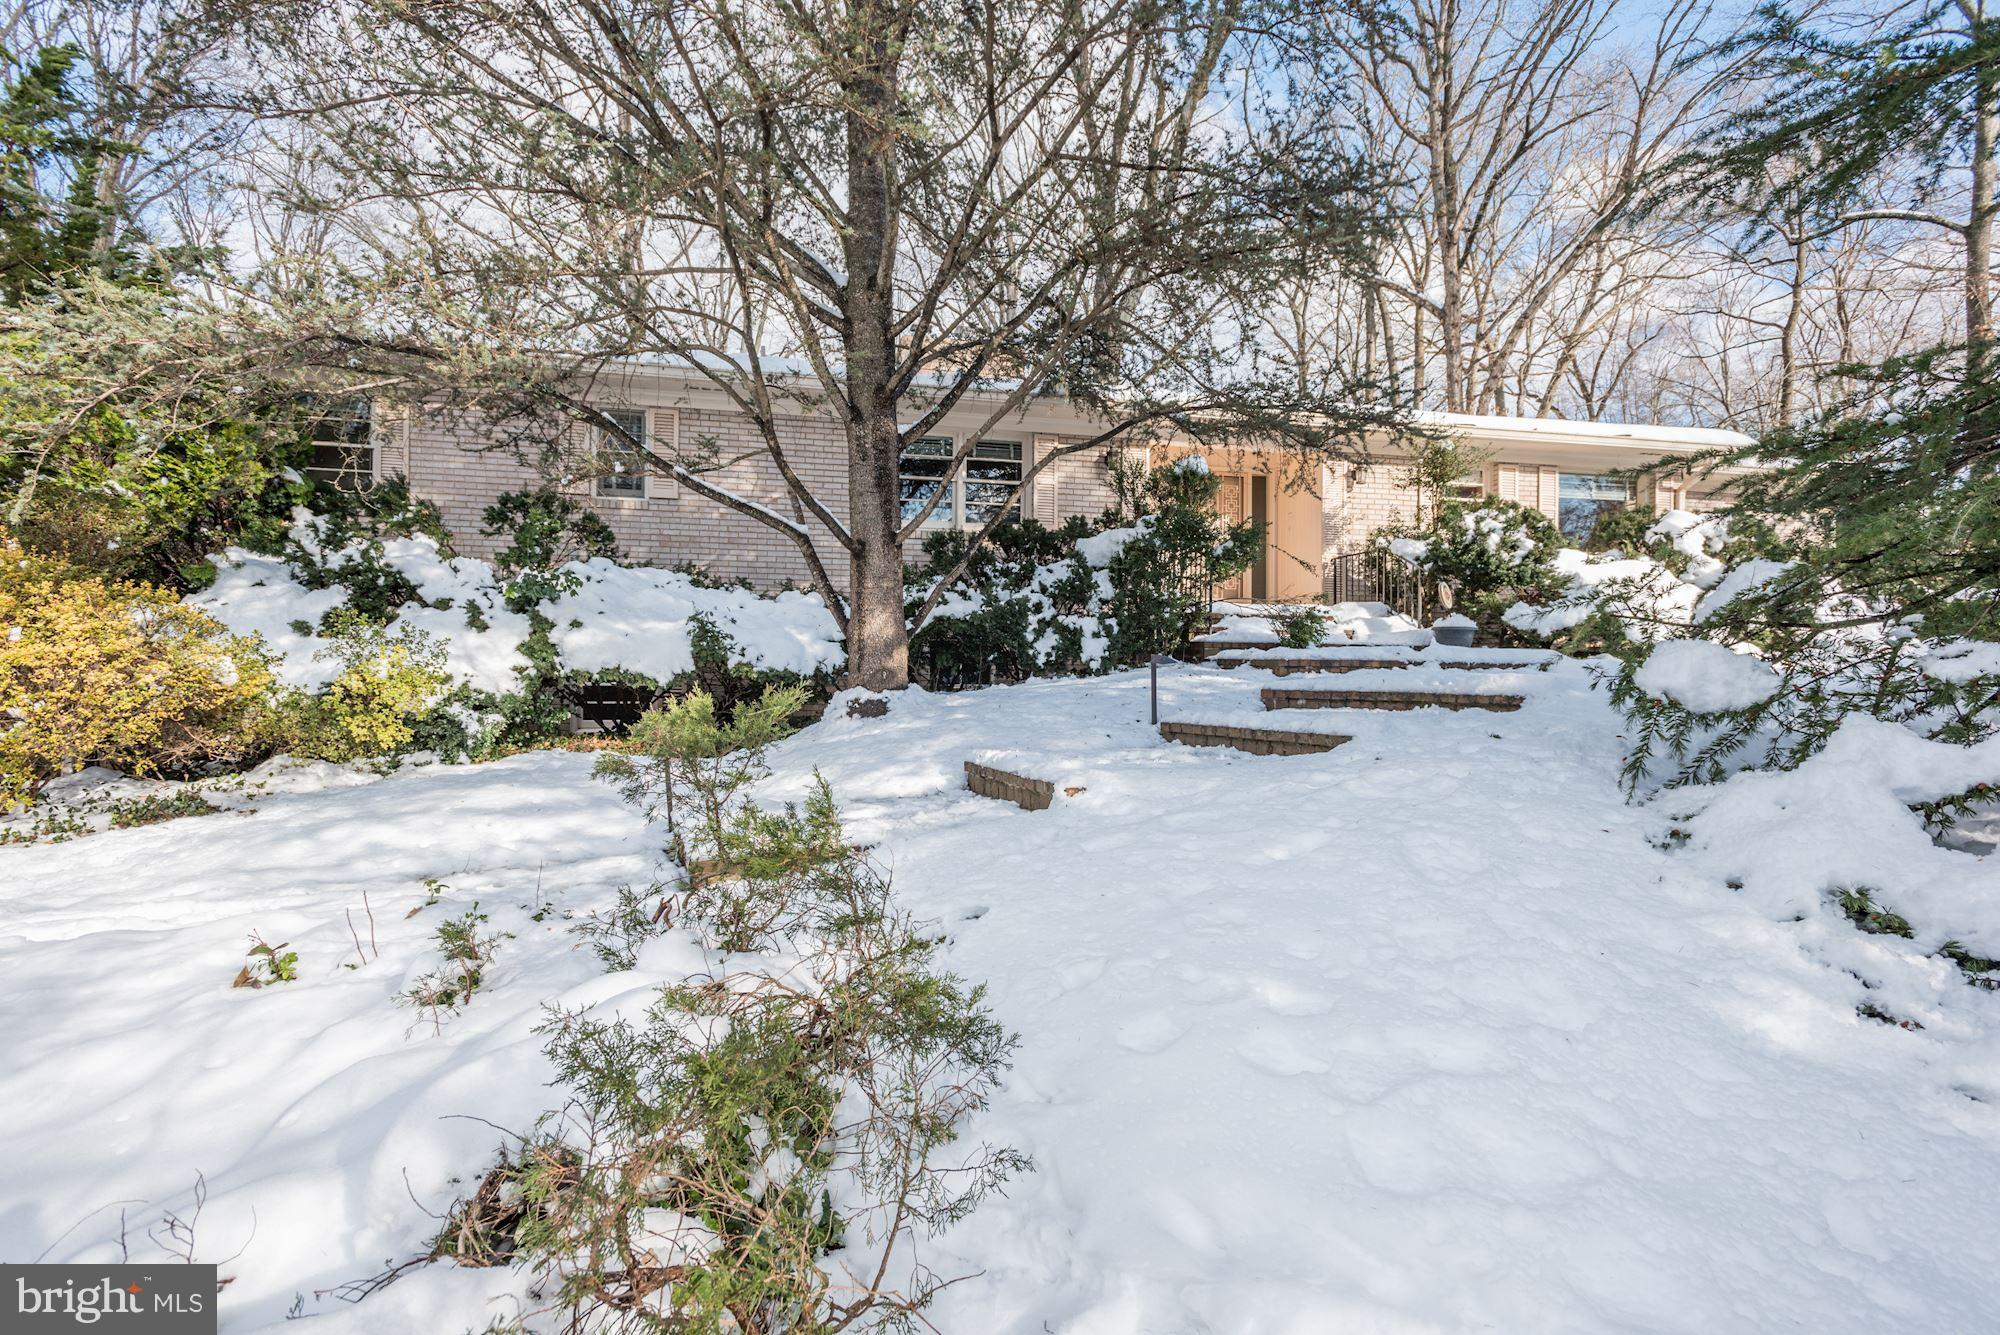 Great opportunity to make this lovely home your own!  Sited on a beautiful .52-acre lot in sought after Chesterbrook Woods - only 1 light to DC! Not your typical rambler, the home throughout boasts exceptional spaces with amazing potential! Large and light-filled living room with bay window overlooking backyard. Sizable Sun Room addition. Large Kitchen with substantial cabinetry and counter space and eat-in area. Lower level walk-out with large family room and wood burning fireplace. 2 additional bedrooms in the lower level. 1.5-car side-loading garage. Minutes to DC and Tysons with easy access to Reagan and Dulles airports. Don't wait to see this home! Sold As-Is.